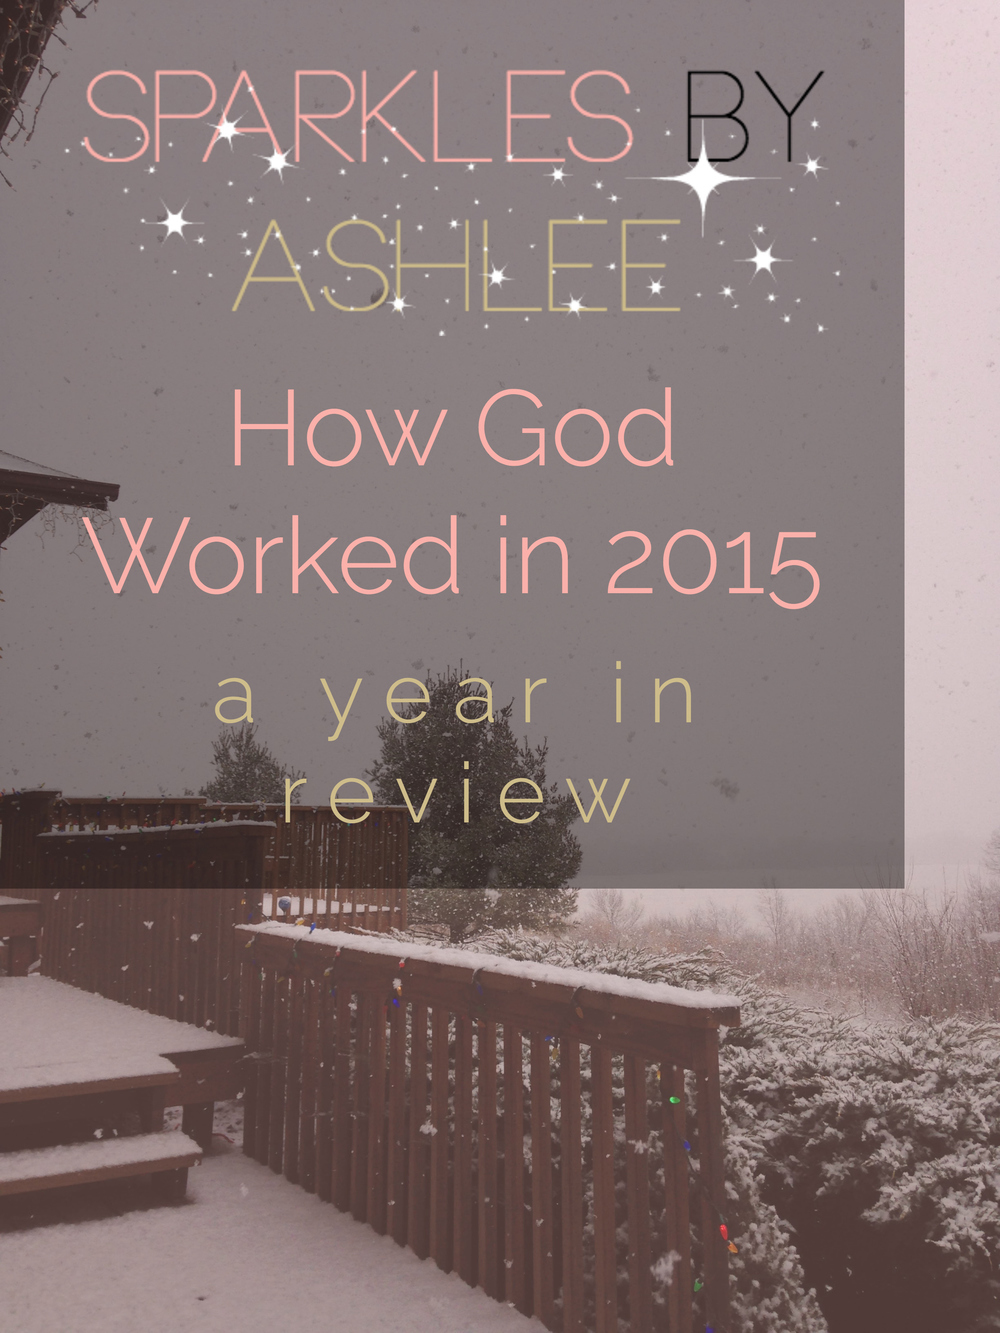 How-God-Worked-in-2015-Sparkles-by-Ashlee.jpg